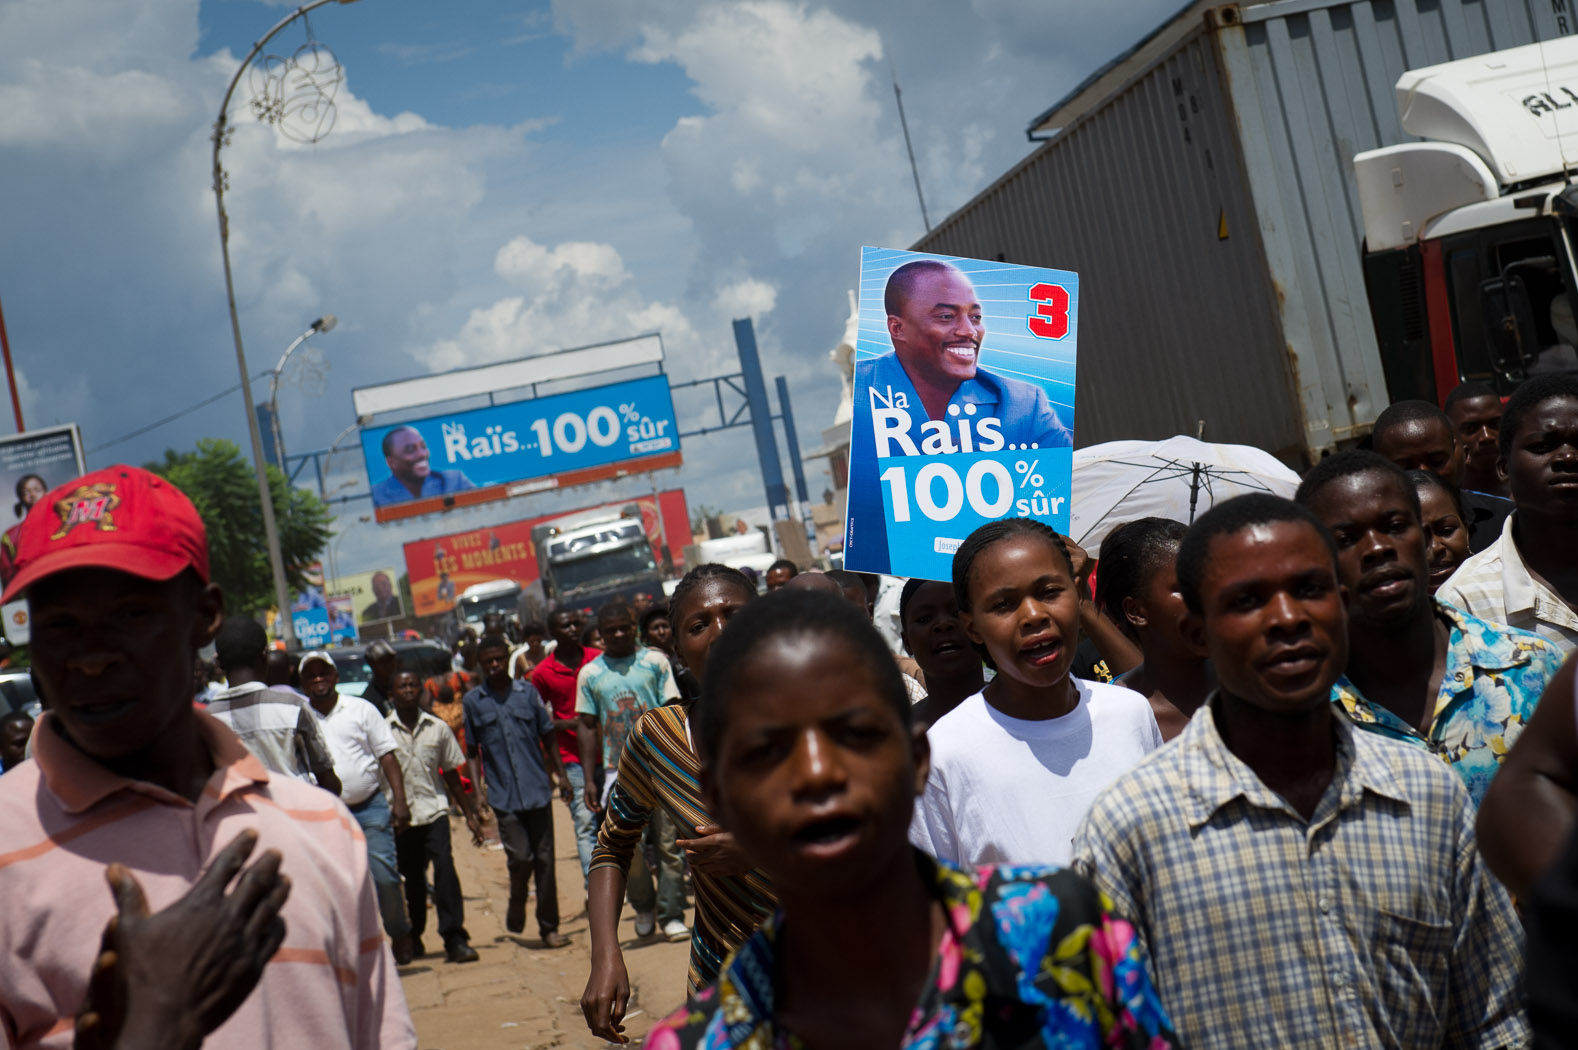 "Supporters of incumbent President Kabila march through the centre of Lubumbashi, carrying posters with his campaign slogan of ""Na Raïs, 100% sûr"" ('With the President, 100% sure') on the final day of campaigning."